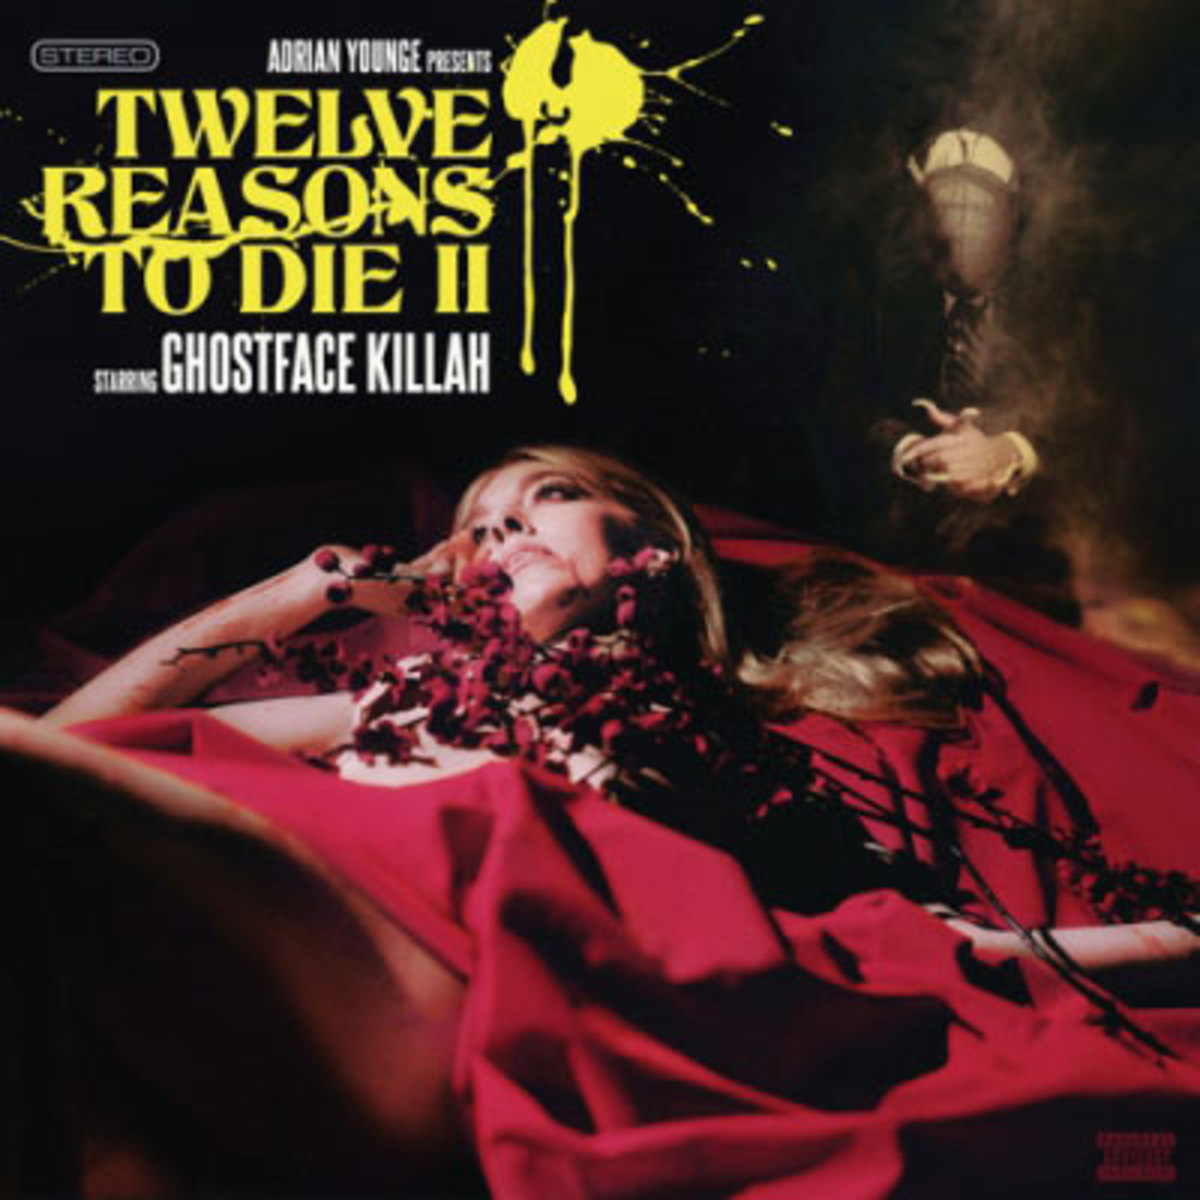 ghostface-killah-twelve-reasons-to-die-ii.jpg